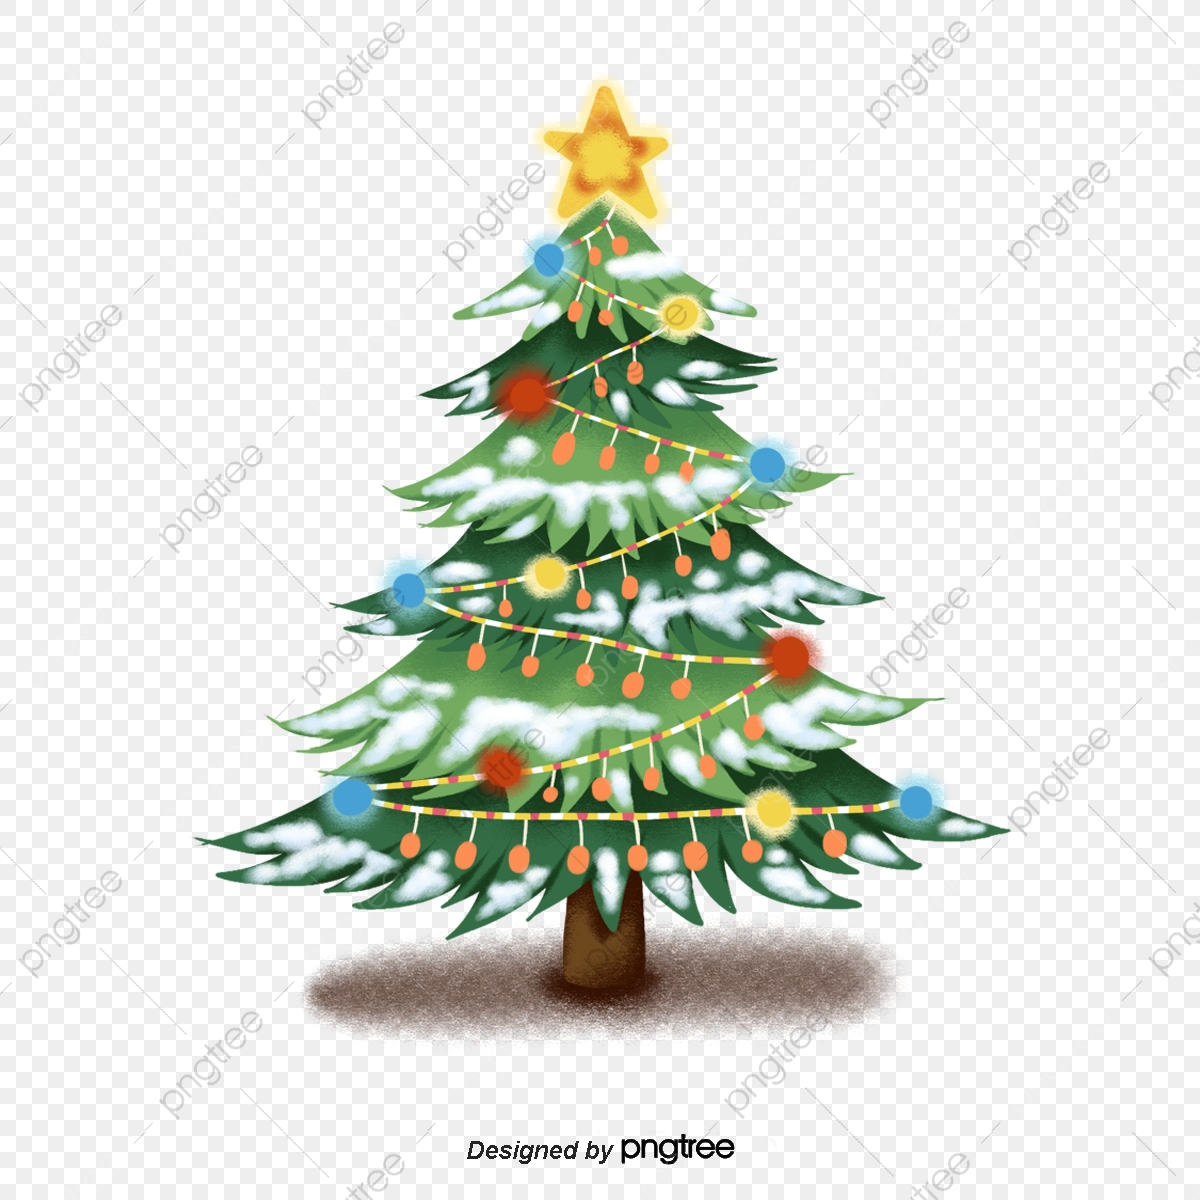 Pretty Clipart Christmas Tree - Simple Christmas Tree Clipart - Free  Transparent PNG Download - PNGkey